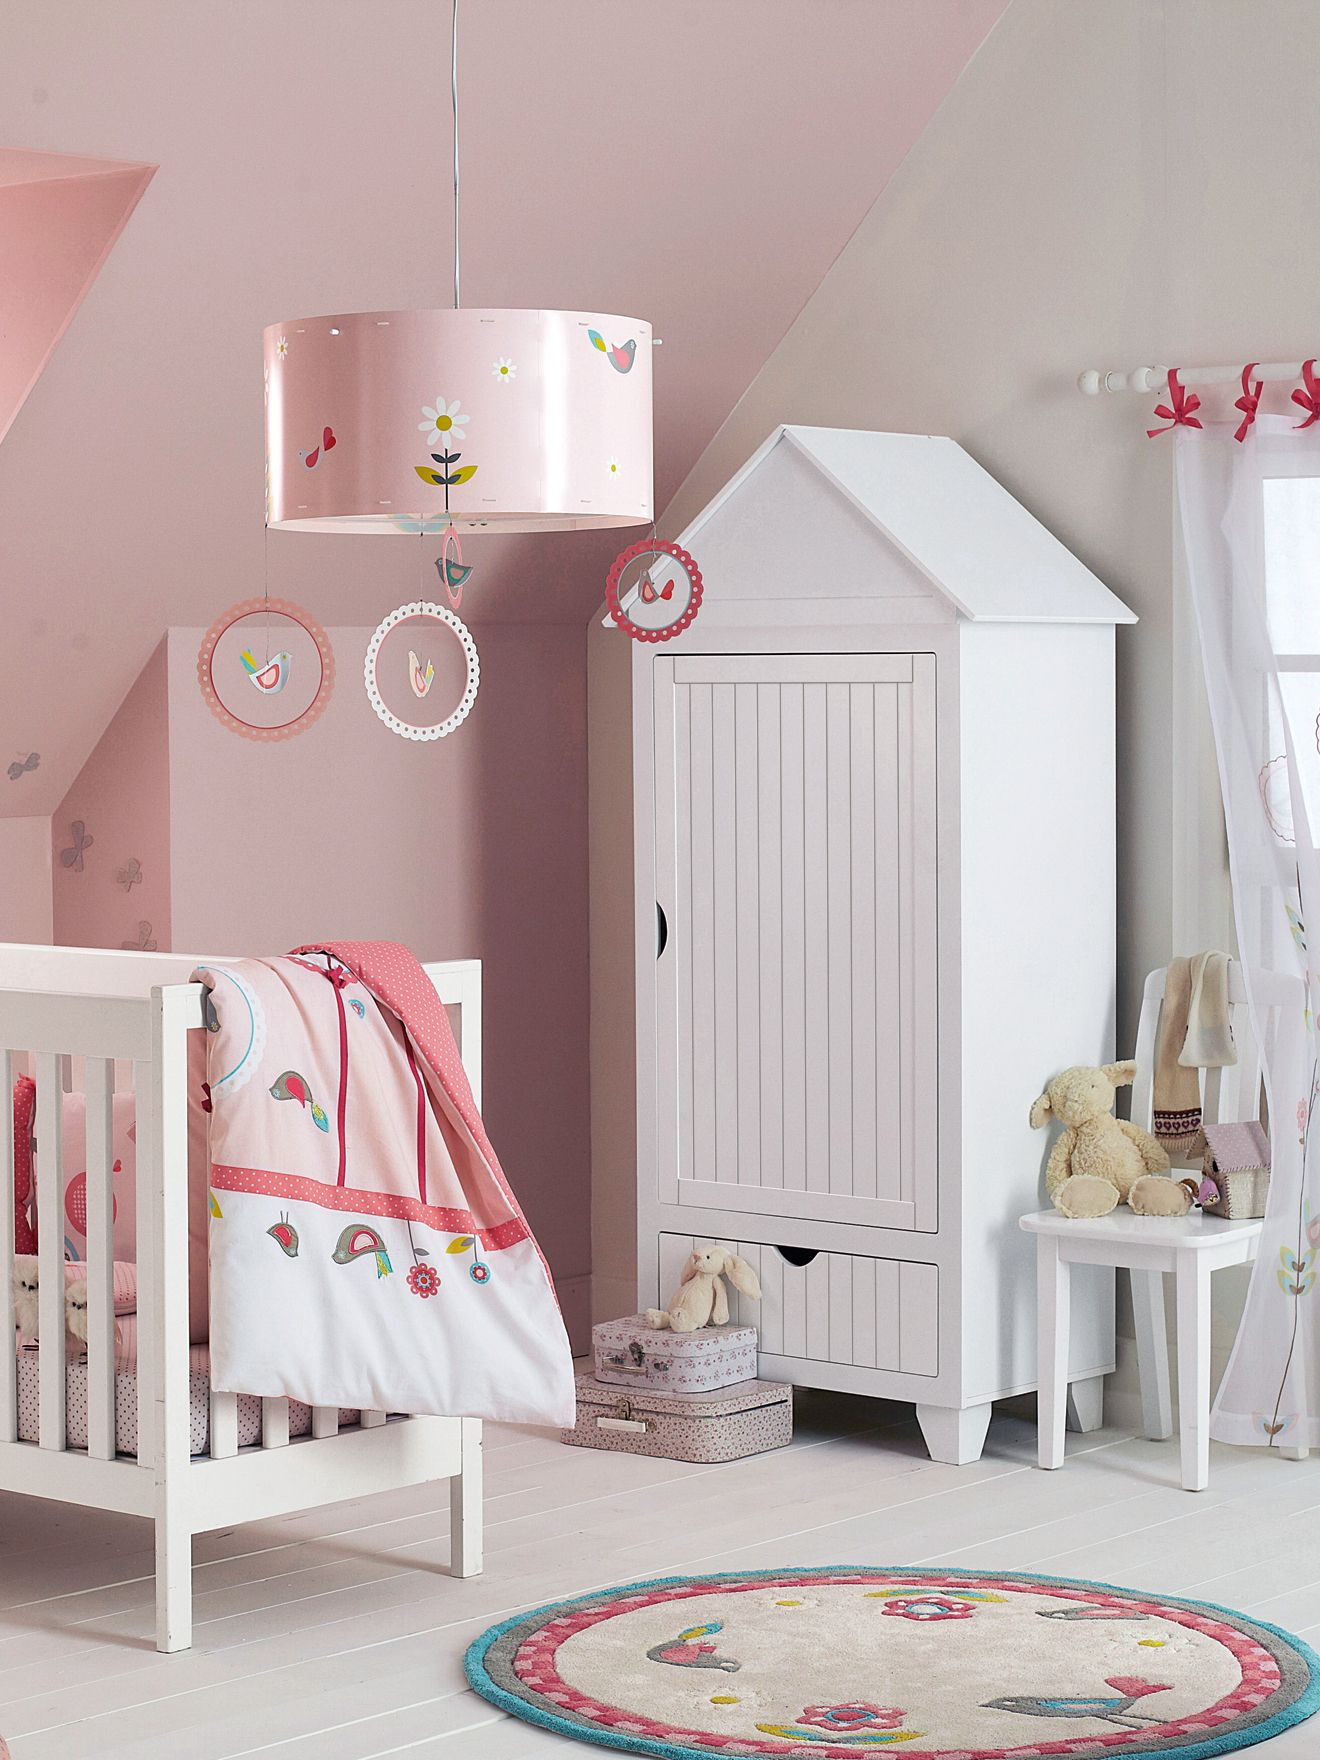 armoire cabine de plage avec penderie enfants www. Black Bedroom Furniture Sets. Home Design Ideas